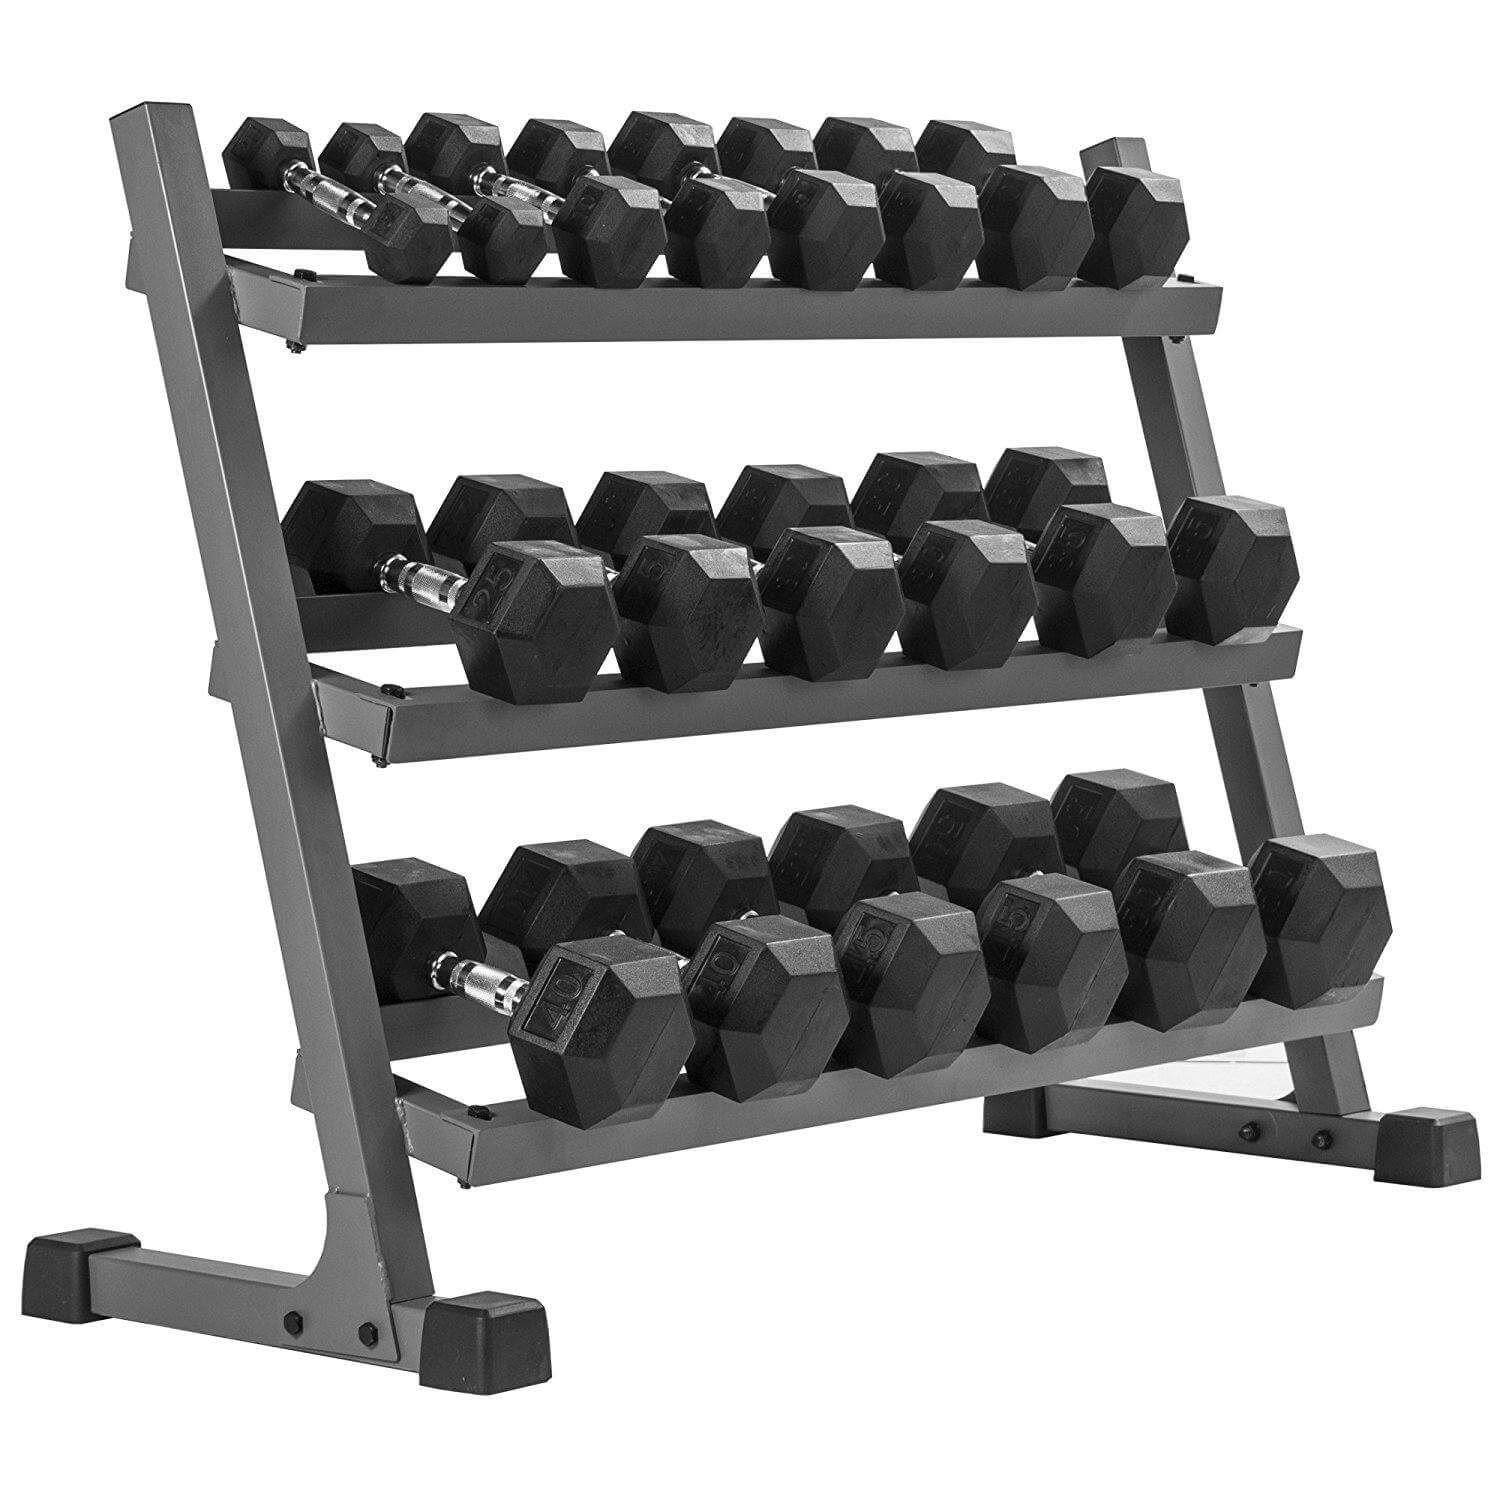 XMark's 550 lb. Premium Hex Dumbbell Set (10 Pair: 5 lb. to 50 lb. Pairs) with XMark's Heavy Duty Three Tier Dumbbell Rack (Gray or White Rack)